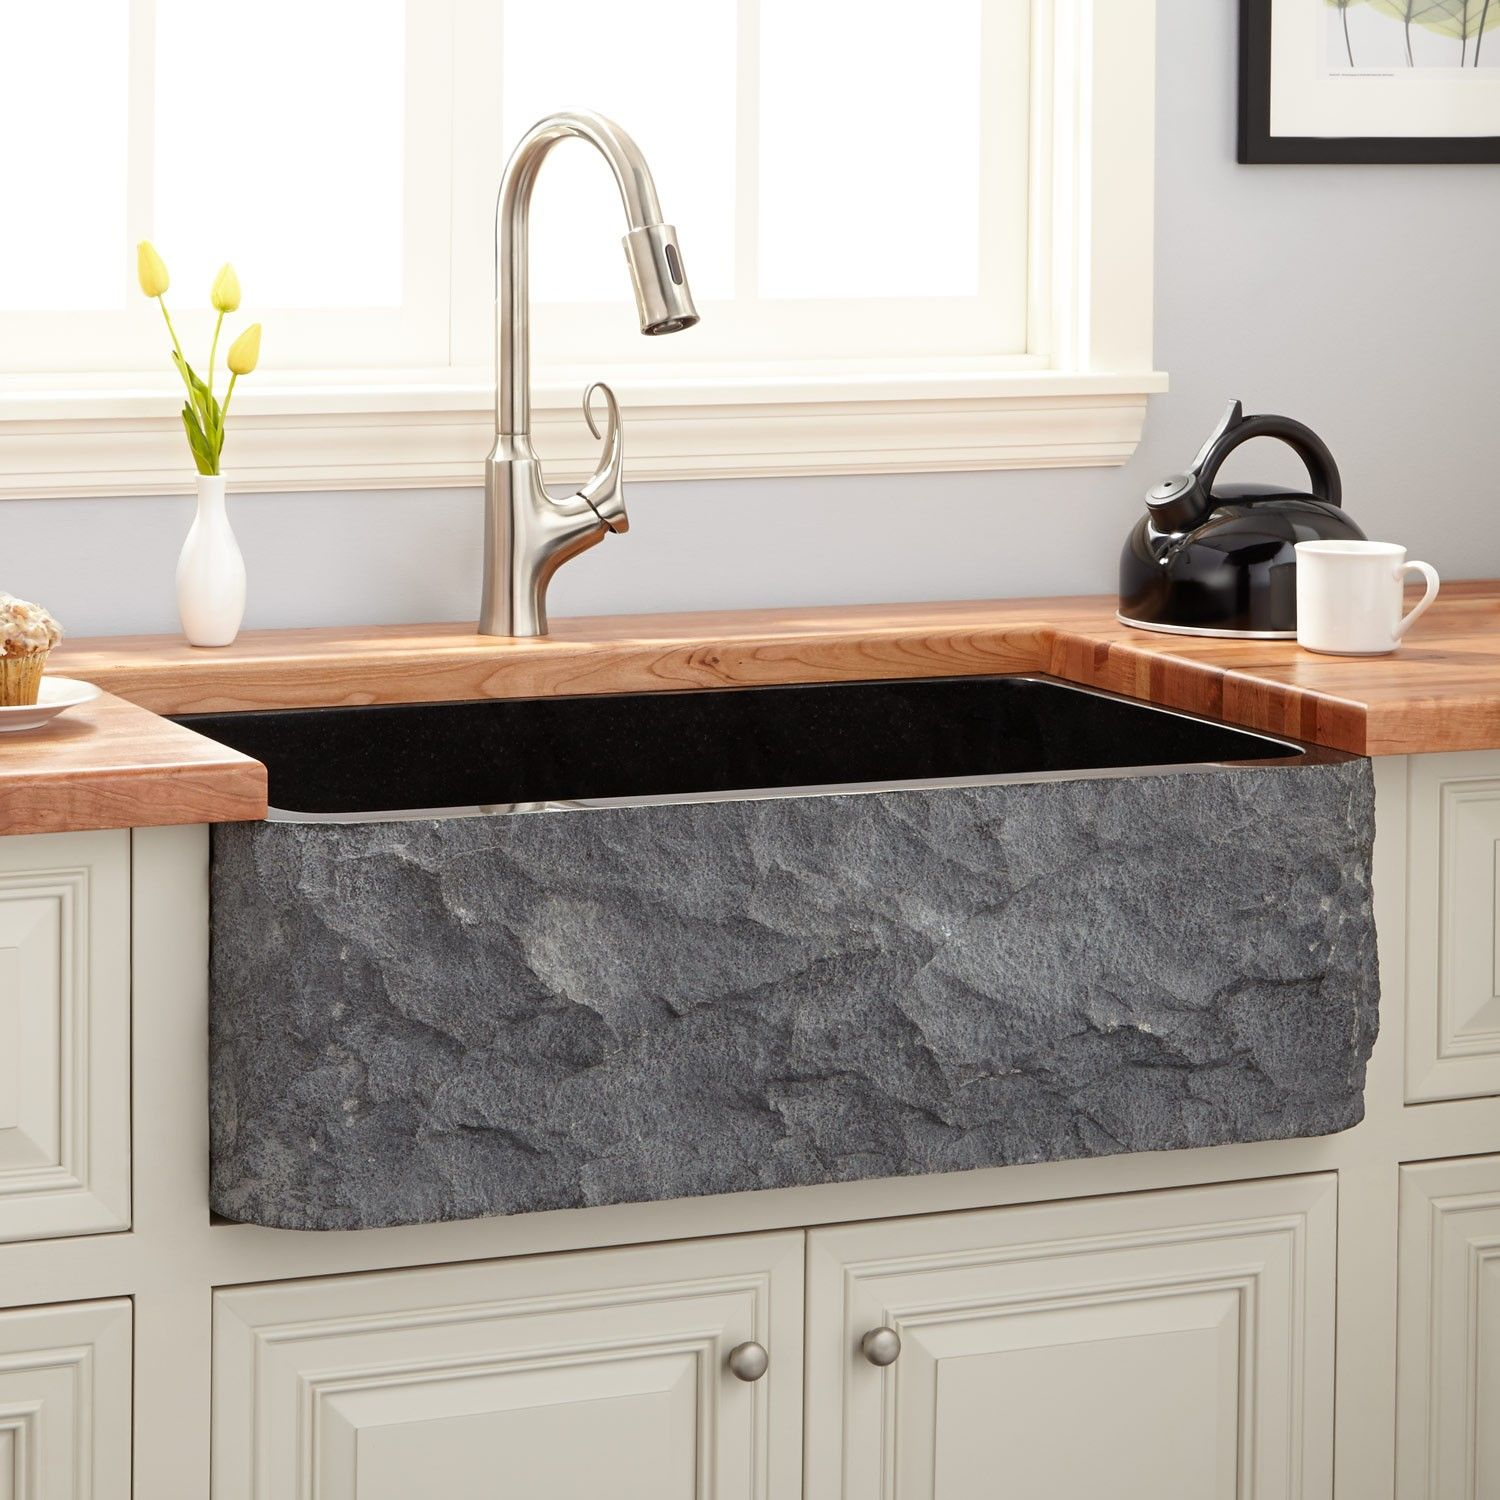 36 X 20 X 10 Polished Granite Single Bowl Farmhouse Sink With Chiseled Apron Polished Black Granite Farmhouse Sink Kitchen Kitchen Sink Design Fireclay Farmhouse Sink